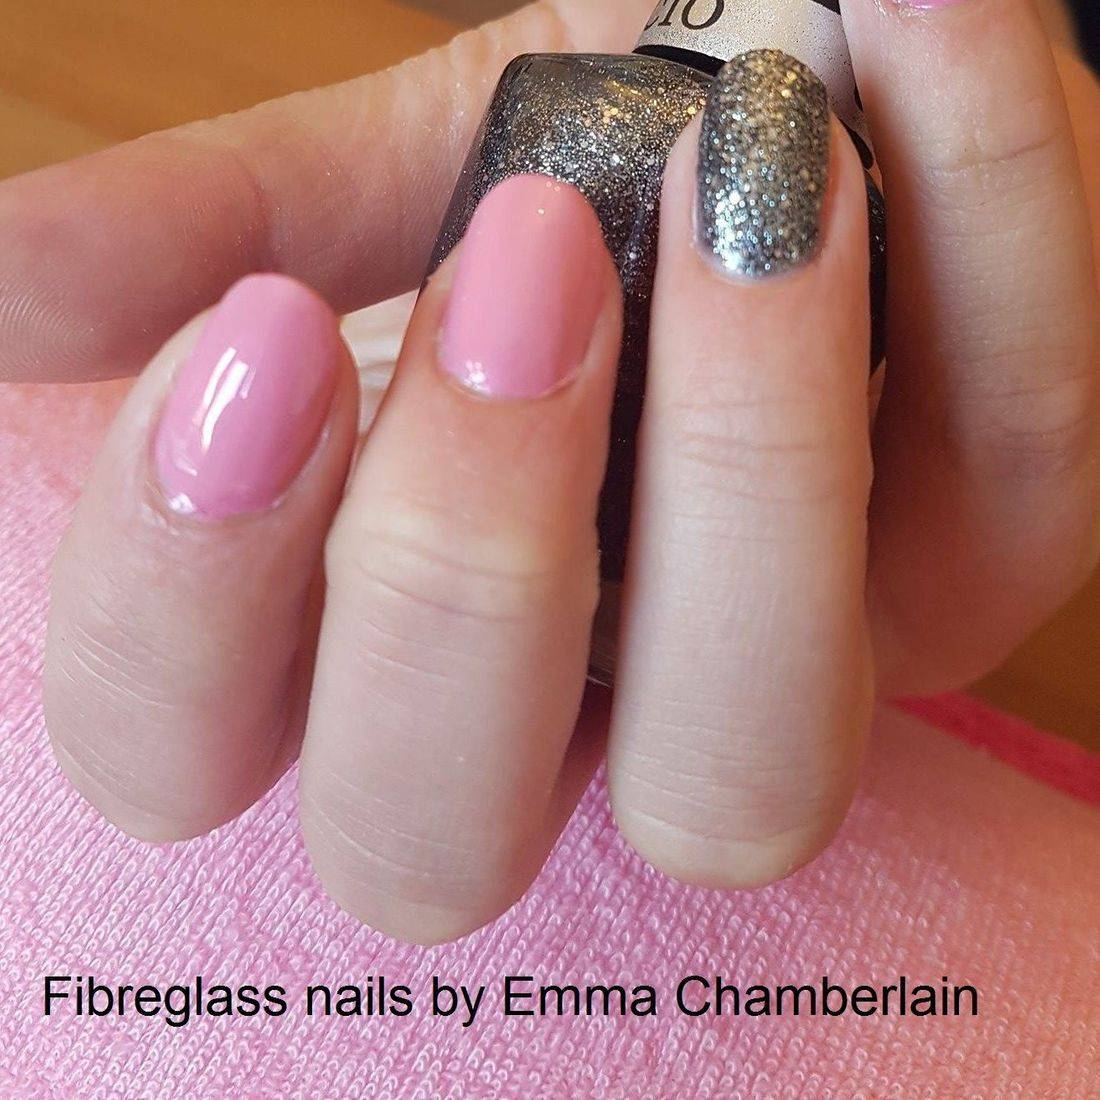 Fibreglass nails after the Complete Nail Technician course